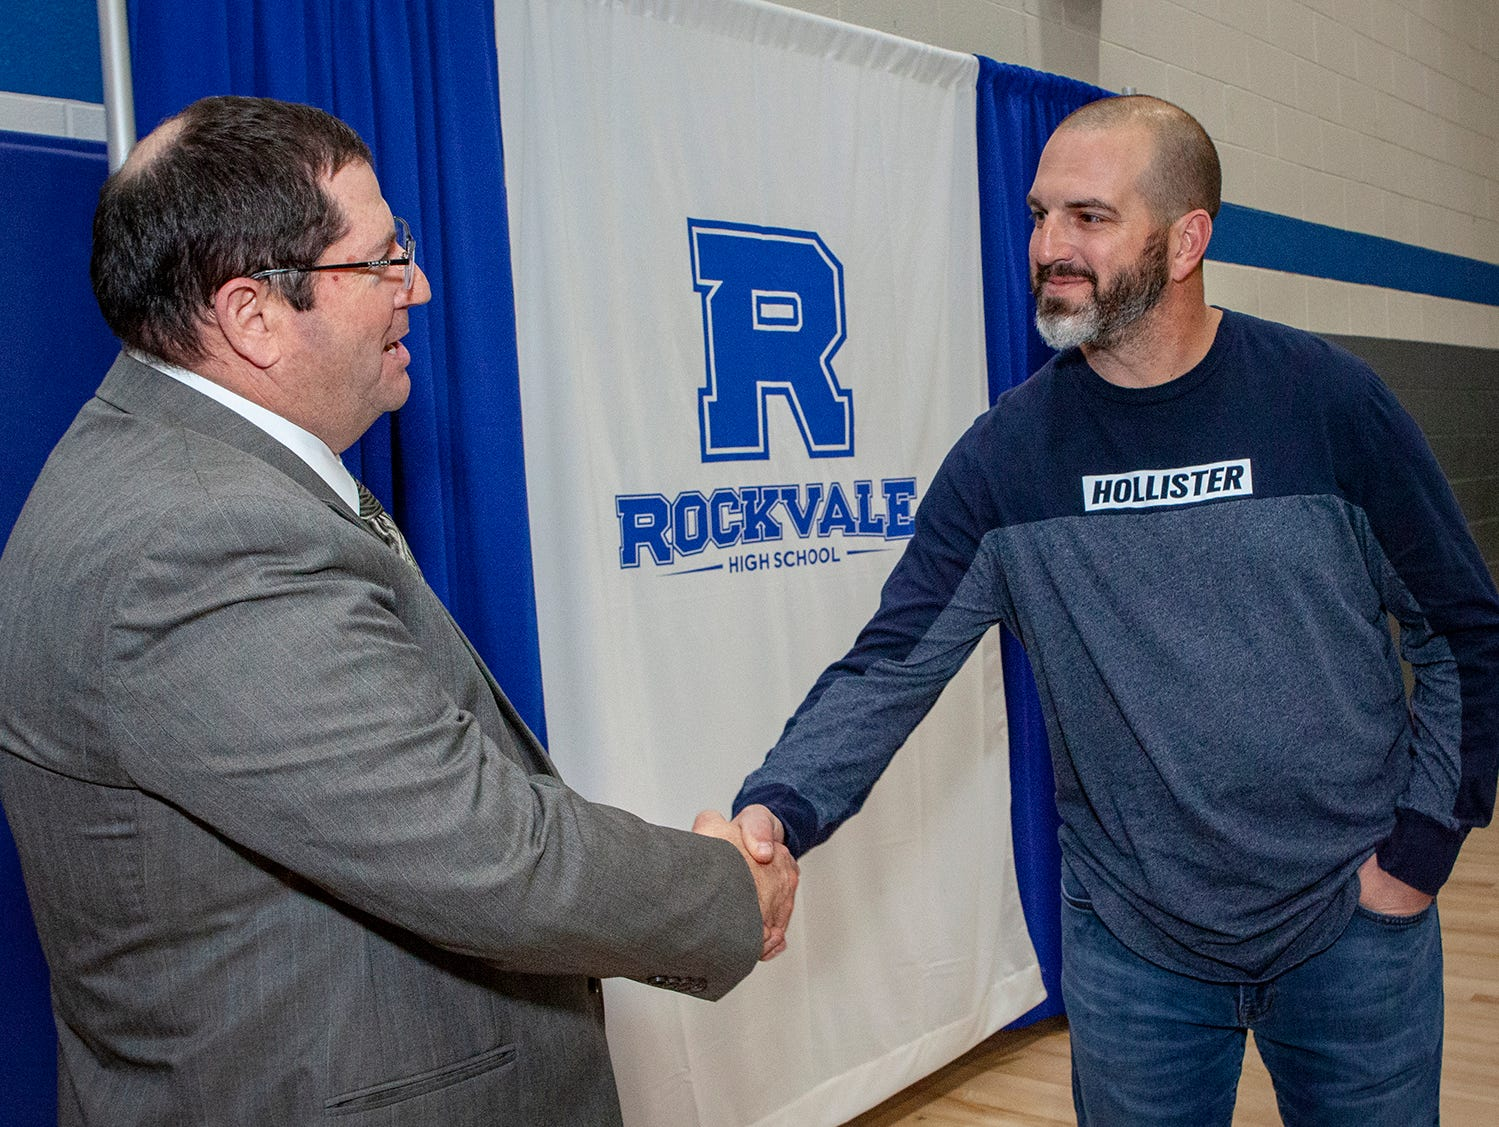 Rockvale High School principal Steve Luker greets at parent at the open house on March 7, 2019, at Rockvale Middle.